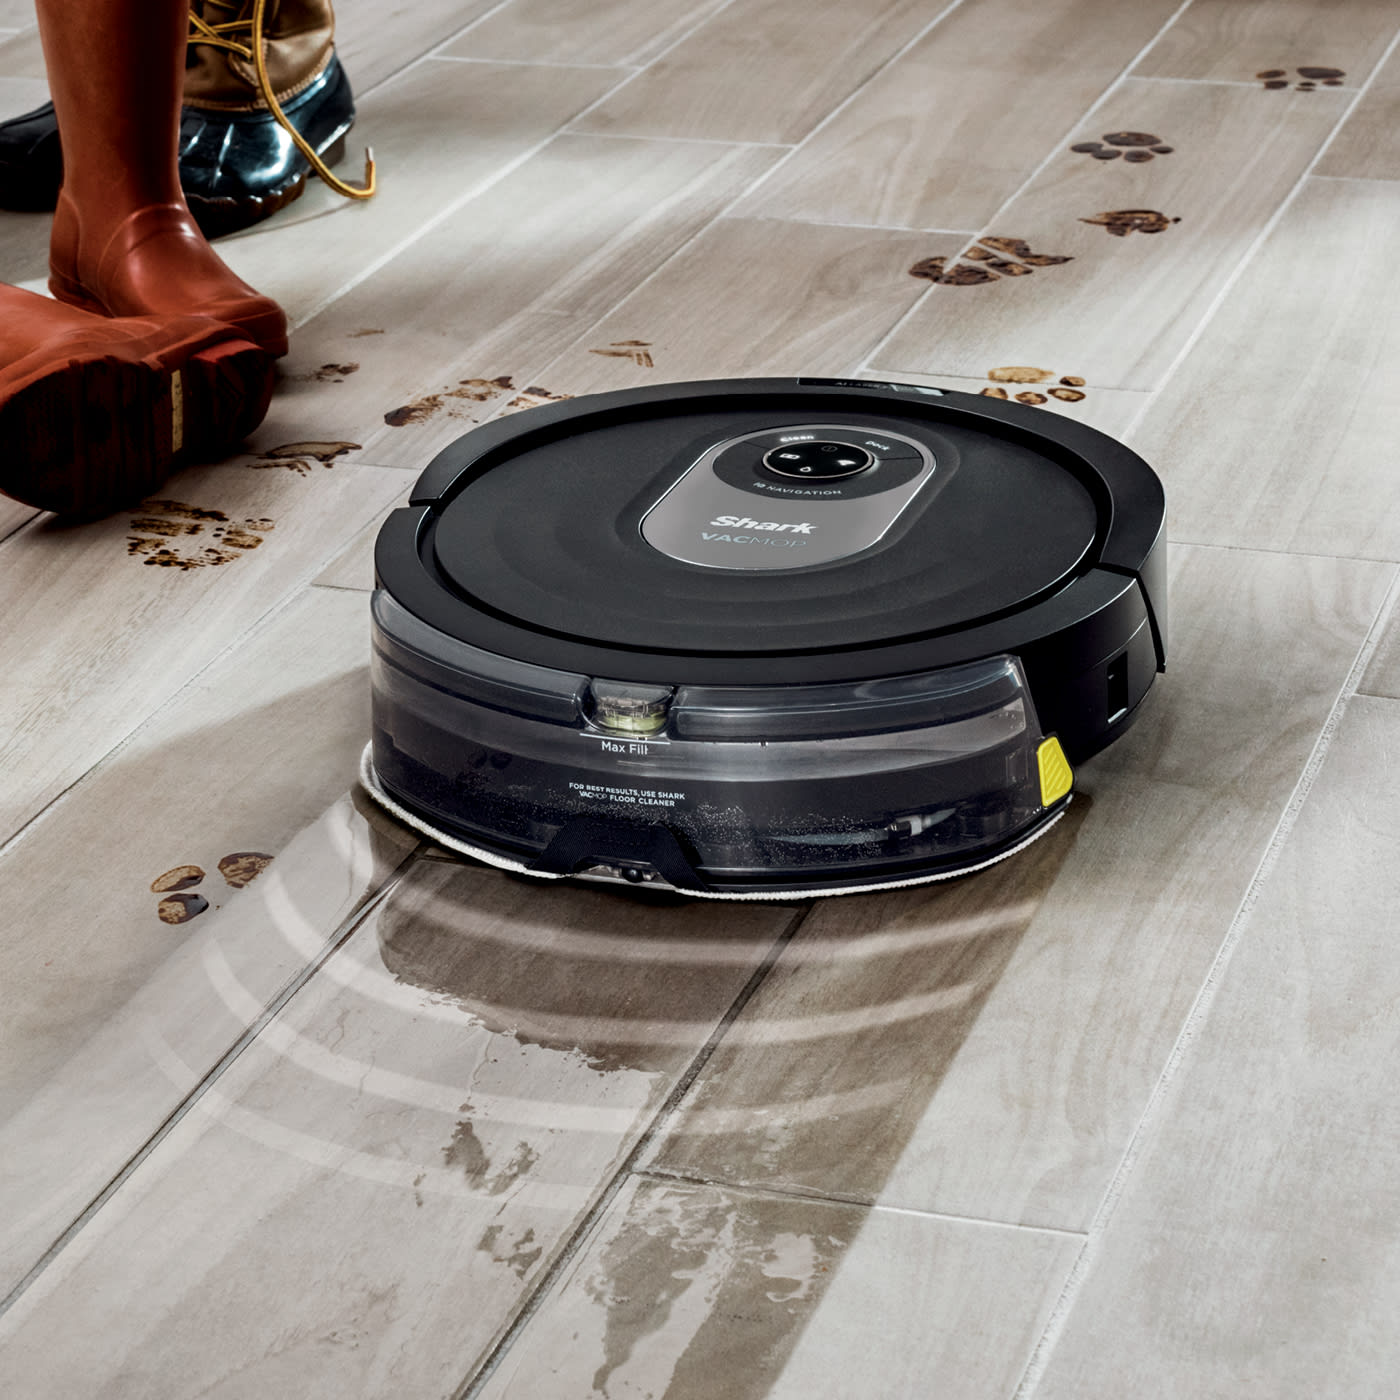 Dry Vacuuming + Wet Mopping